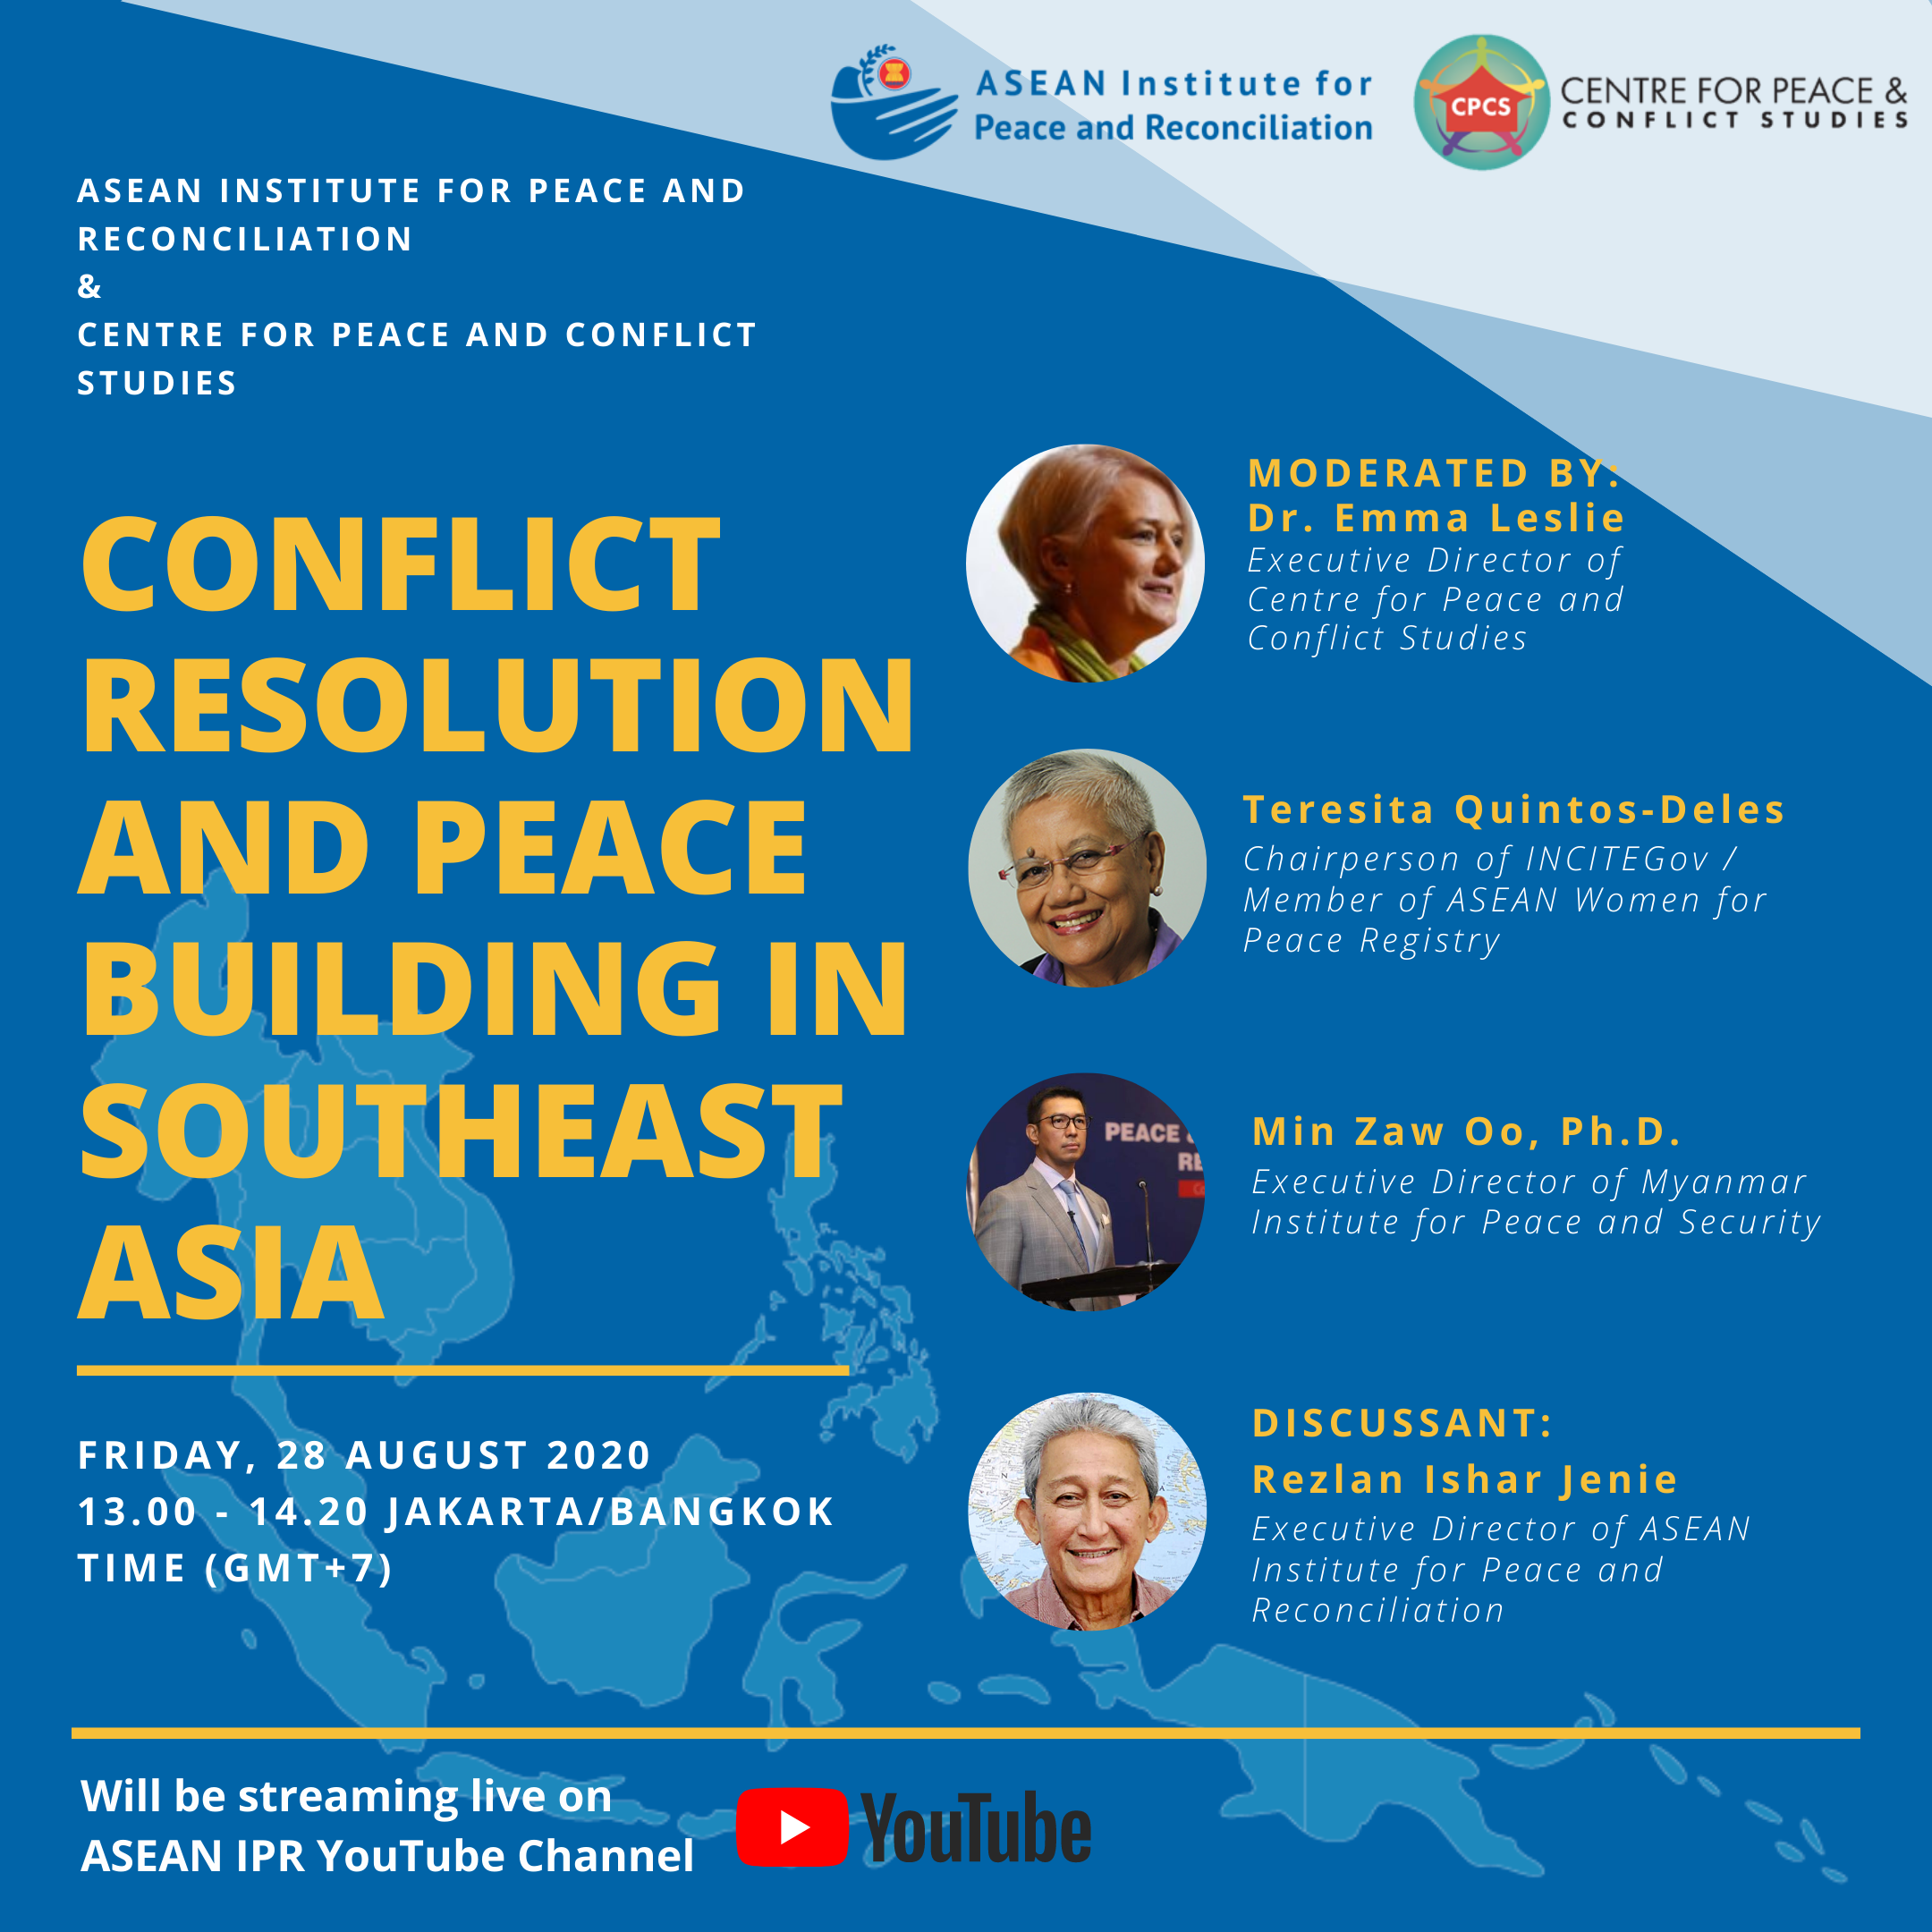 ASEAN-IPR DISCUSSION SERIES: CONFLICT RESOLUTION AND PEACE BUILDING IN SOUTHEAST ASIA – Friday, 28 August 2020